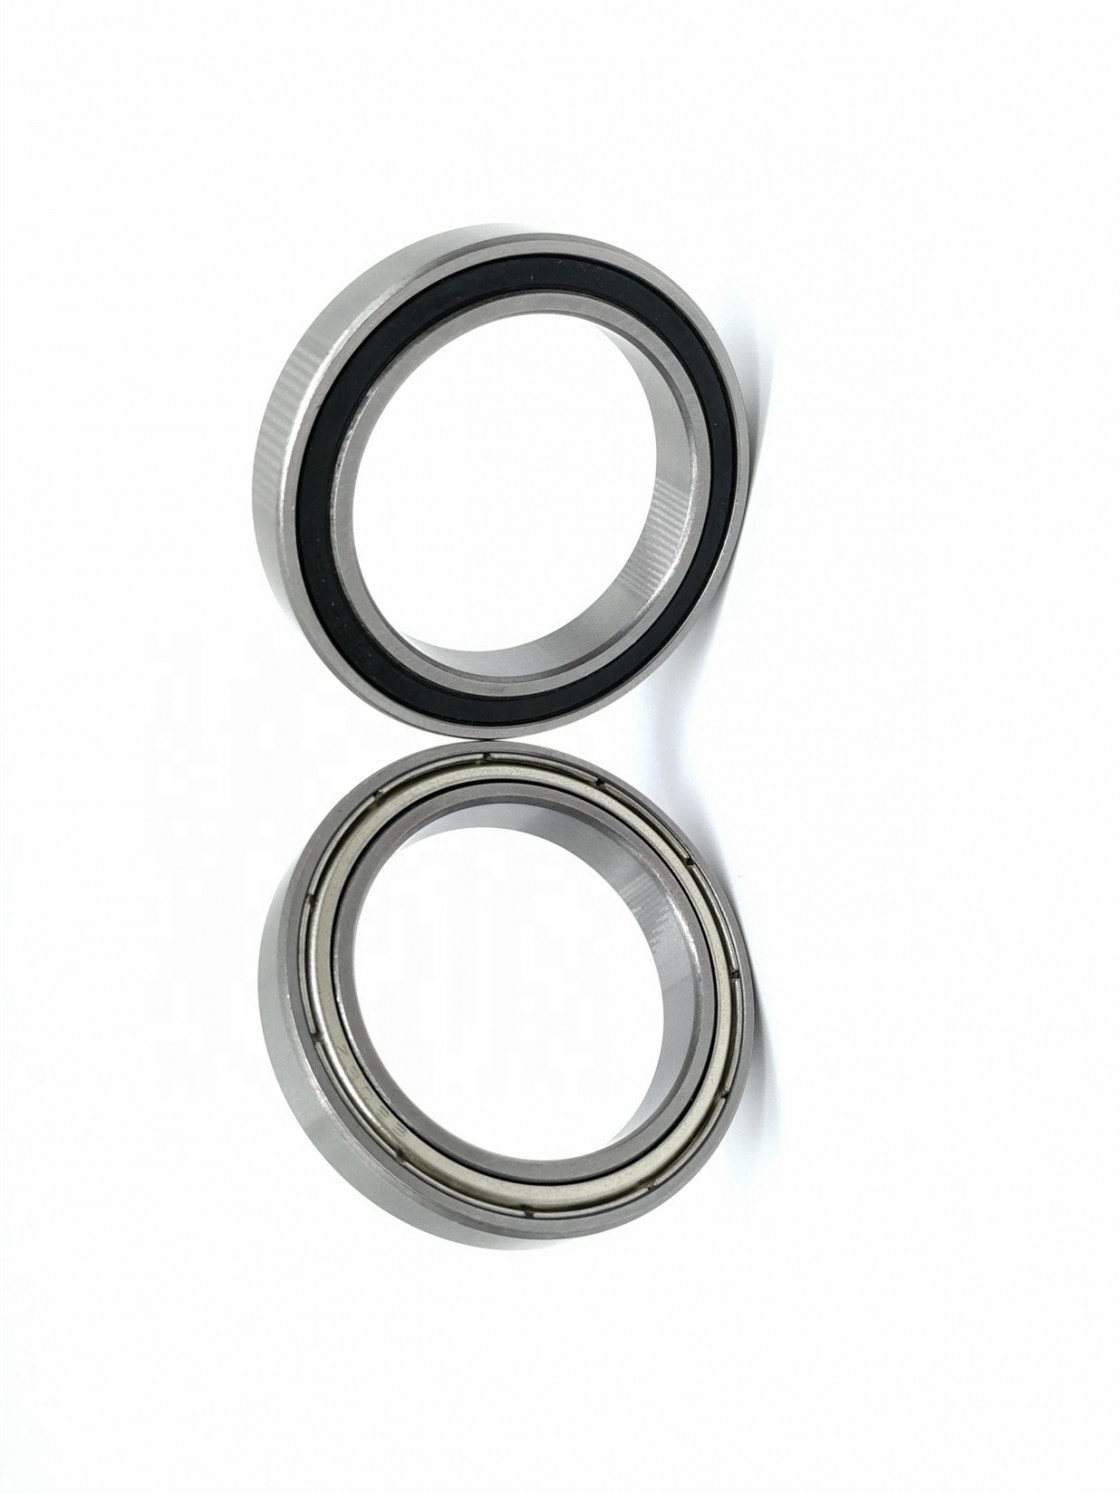 NTN NSK Koyo NACHI Deep Groove Ball Bearings 6000 6100 6200 6300 6800 6900